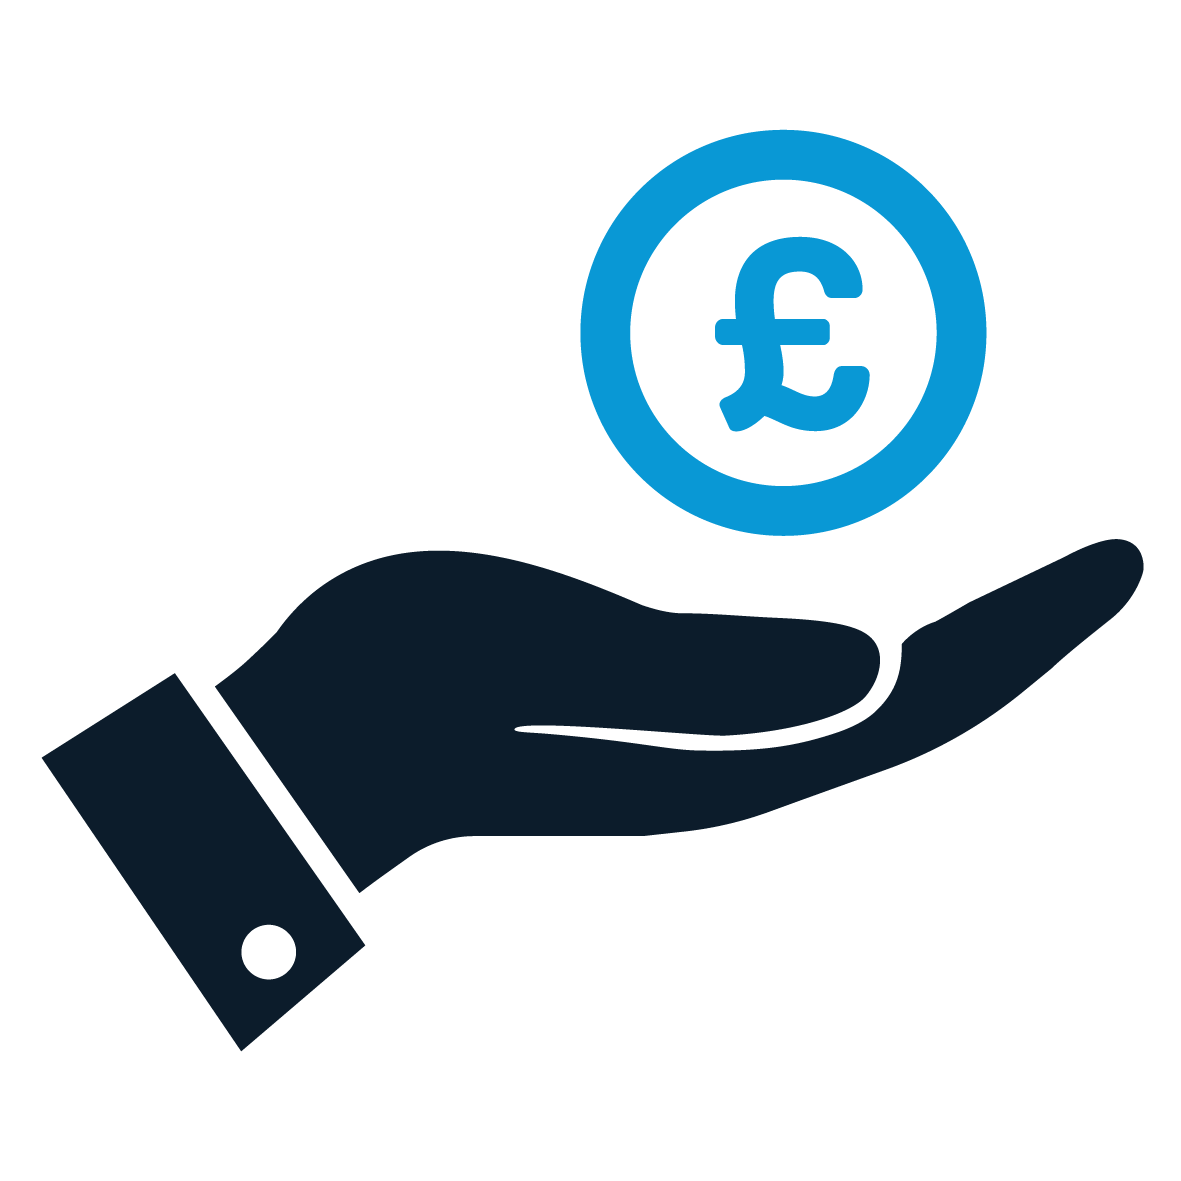 Sustainable Economy Icon. A stylised blue hand holding a coin marked with '£'